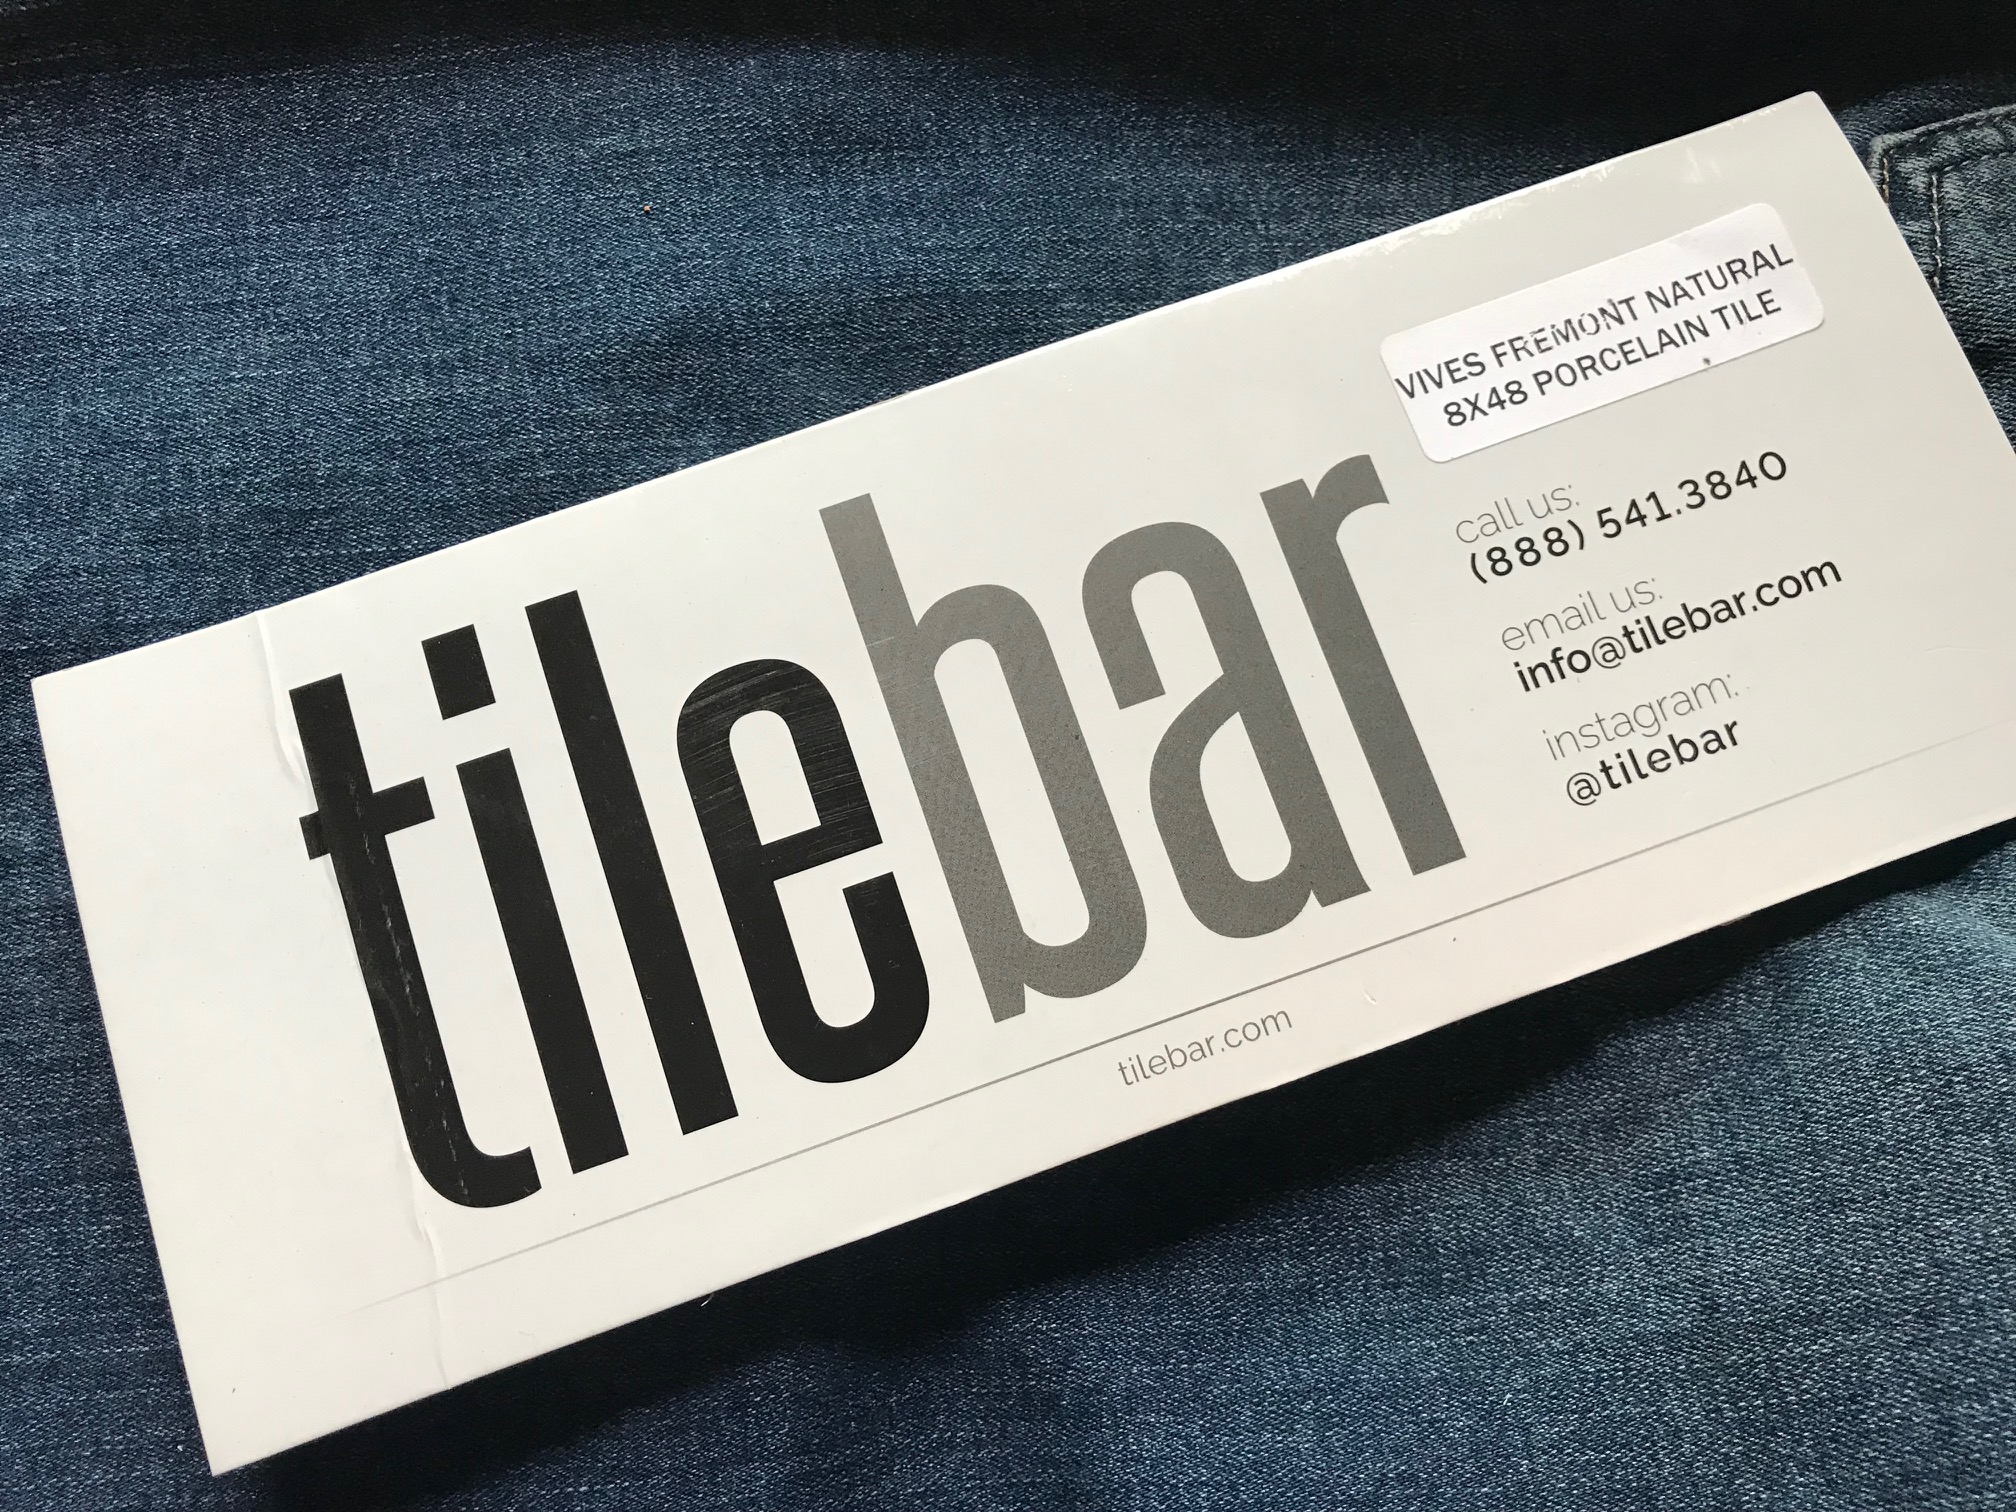 Vives Fremont Natural Porcelain Tile from tilebar: 268 ppm Lead (90 is unsafe in kids' items)